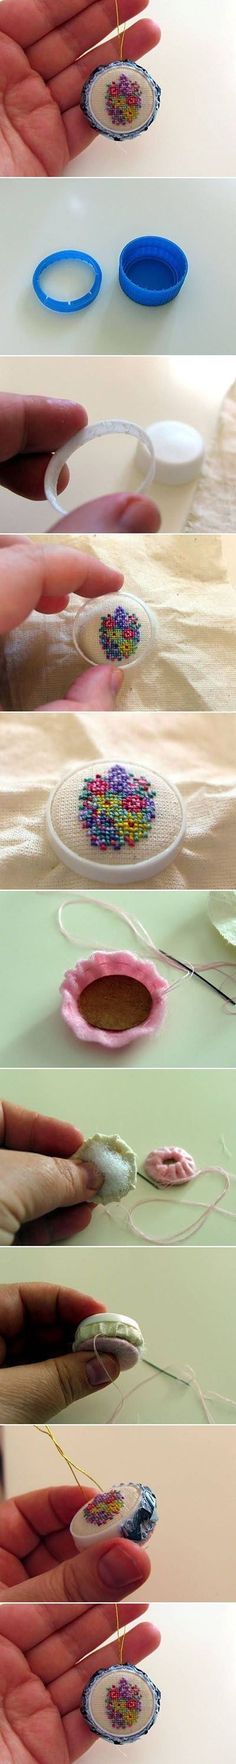 DIY Weaved Bottle Cap Ornament, DIY and Crafts, embroidery stitching using a soda pop soft drink bottle lid, cute pretty floral design, could be used as ornaments or jewelry ༺✿ƬⱤღ www. Ribbon Embroidery, Cross Stitch Embroidery, Embroidery Patterns, Cross Stitch Patterns, Embroidery Digitizing, Embroidery Needles, Embroidery Jewelry, Diy Bottle, Bottle Crafts